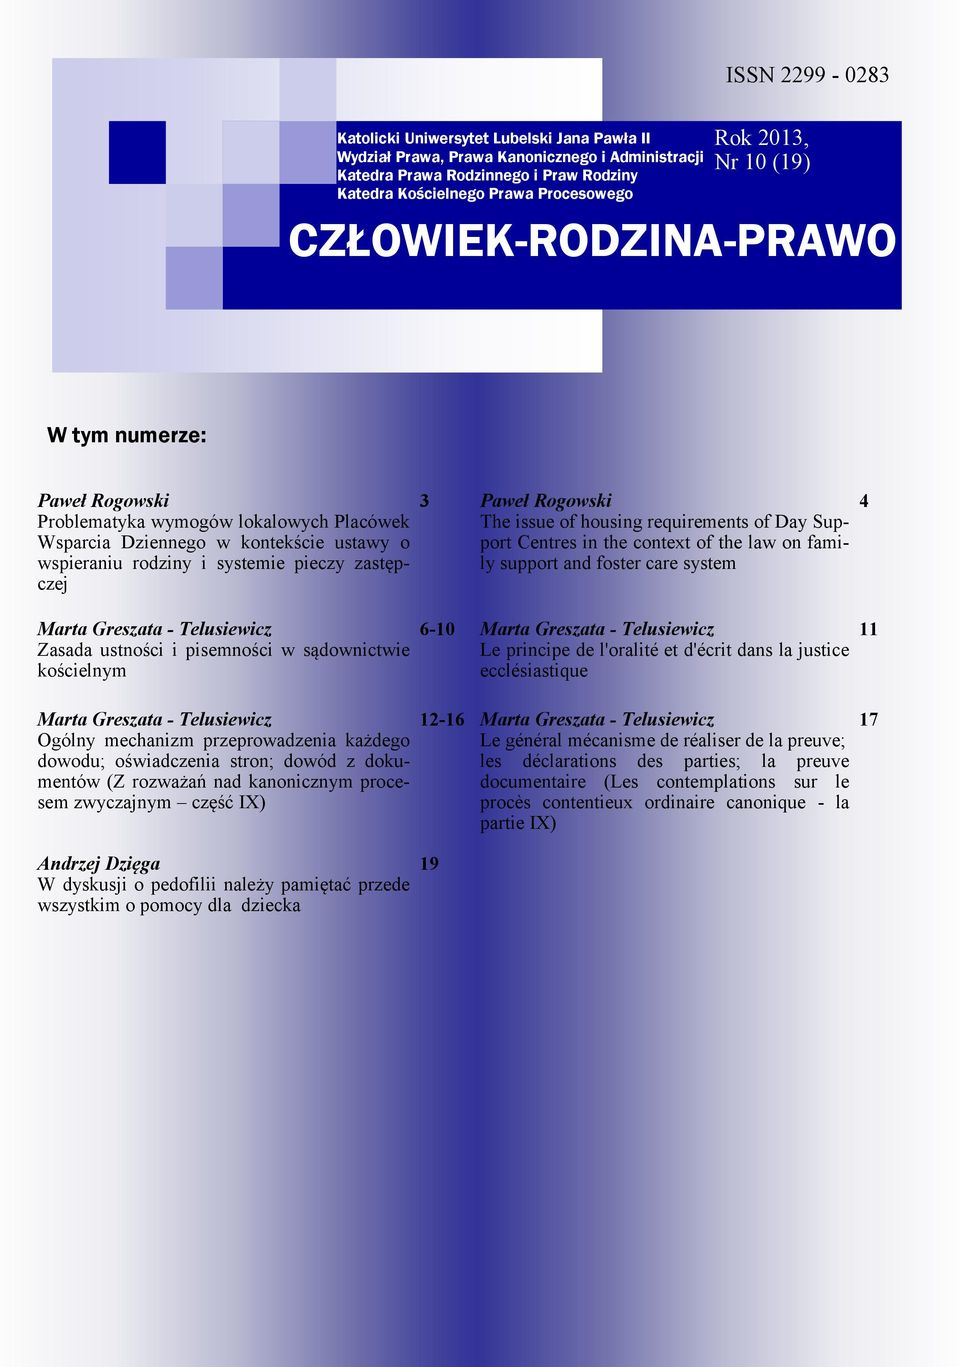 i pisemności w sądownictwie kościelnym 3 6-10 Paweł Rogowski The issue of housing requirements of Day Support Centres in the context of the law on family support and foster care system Marta Greszata